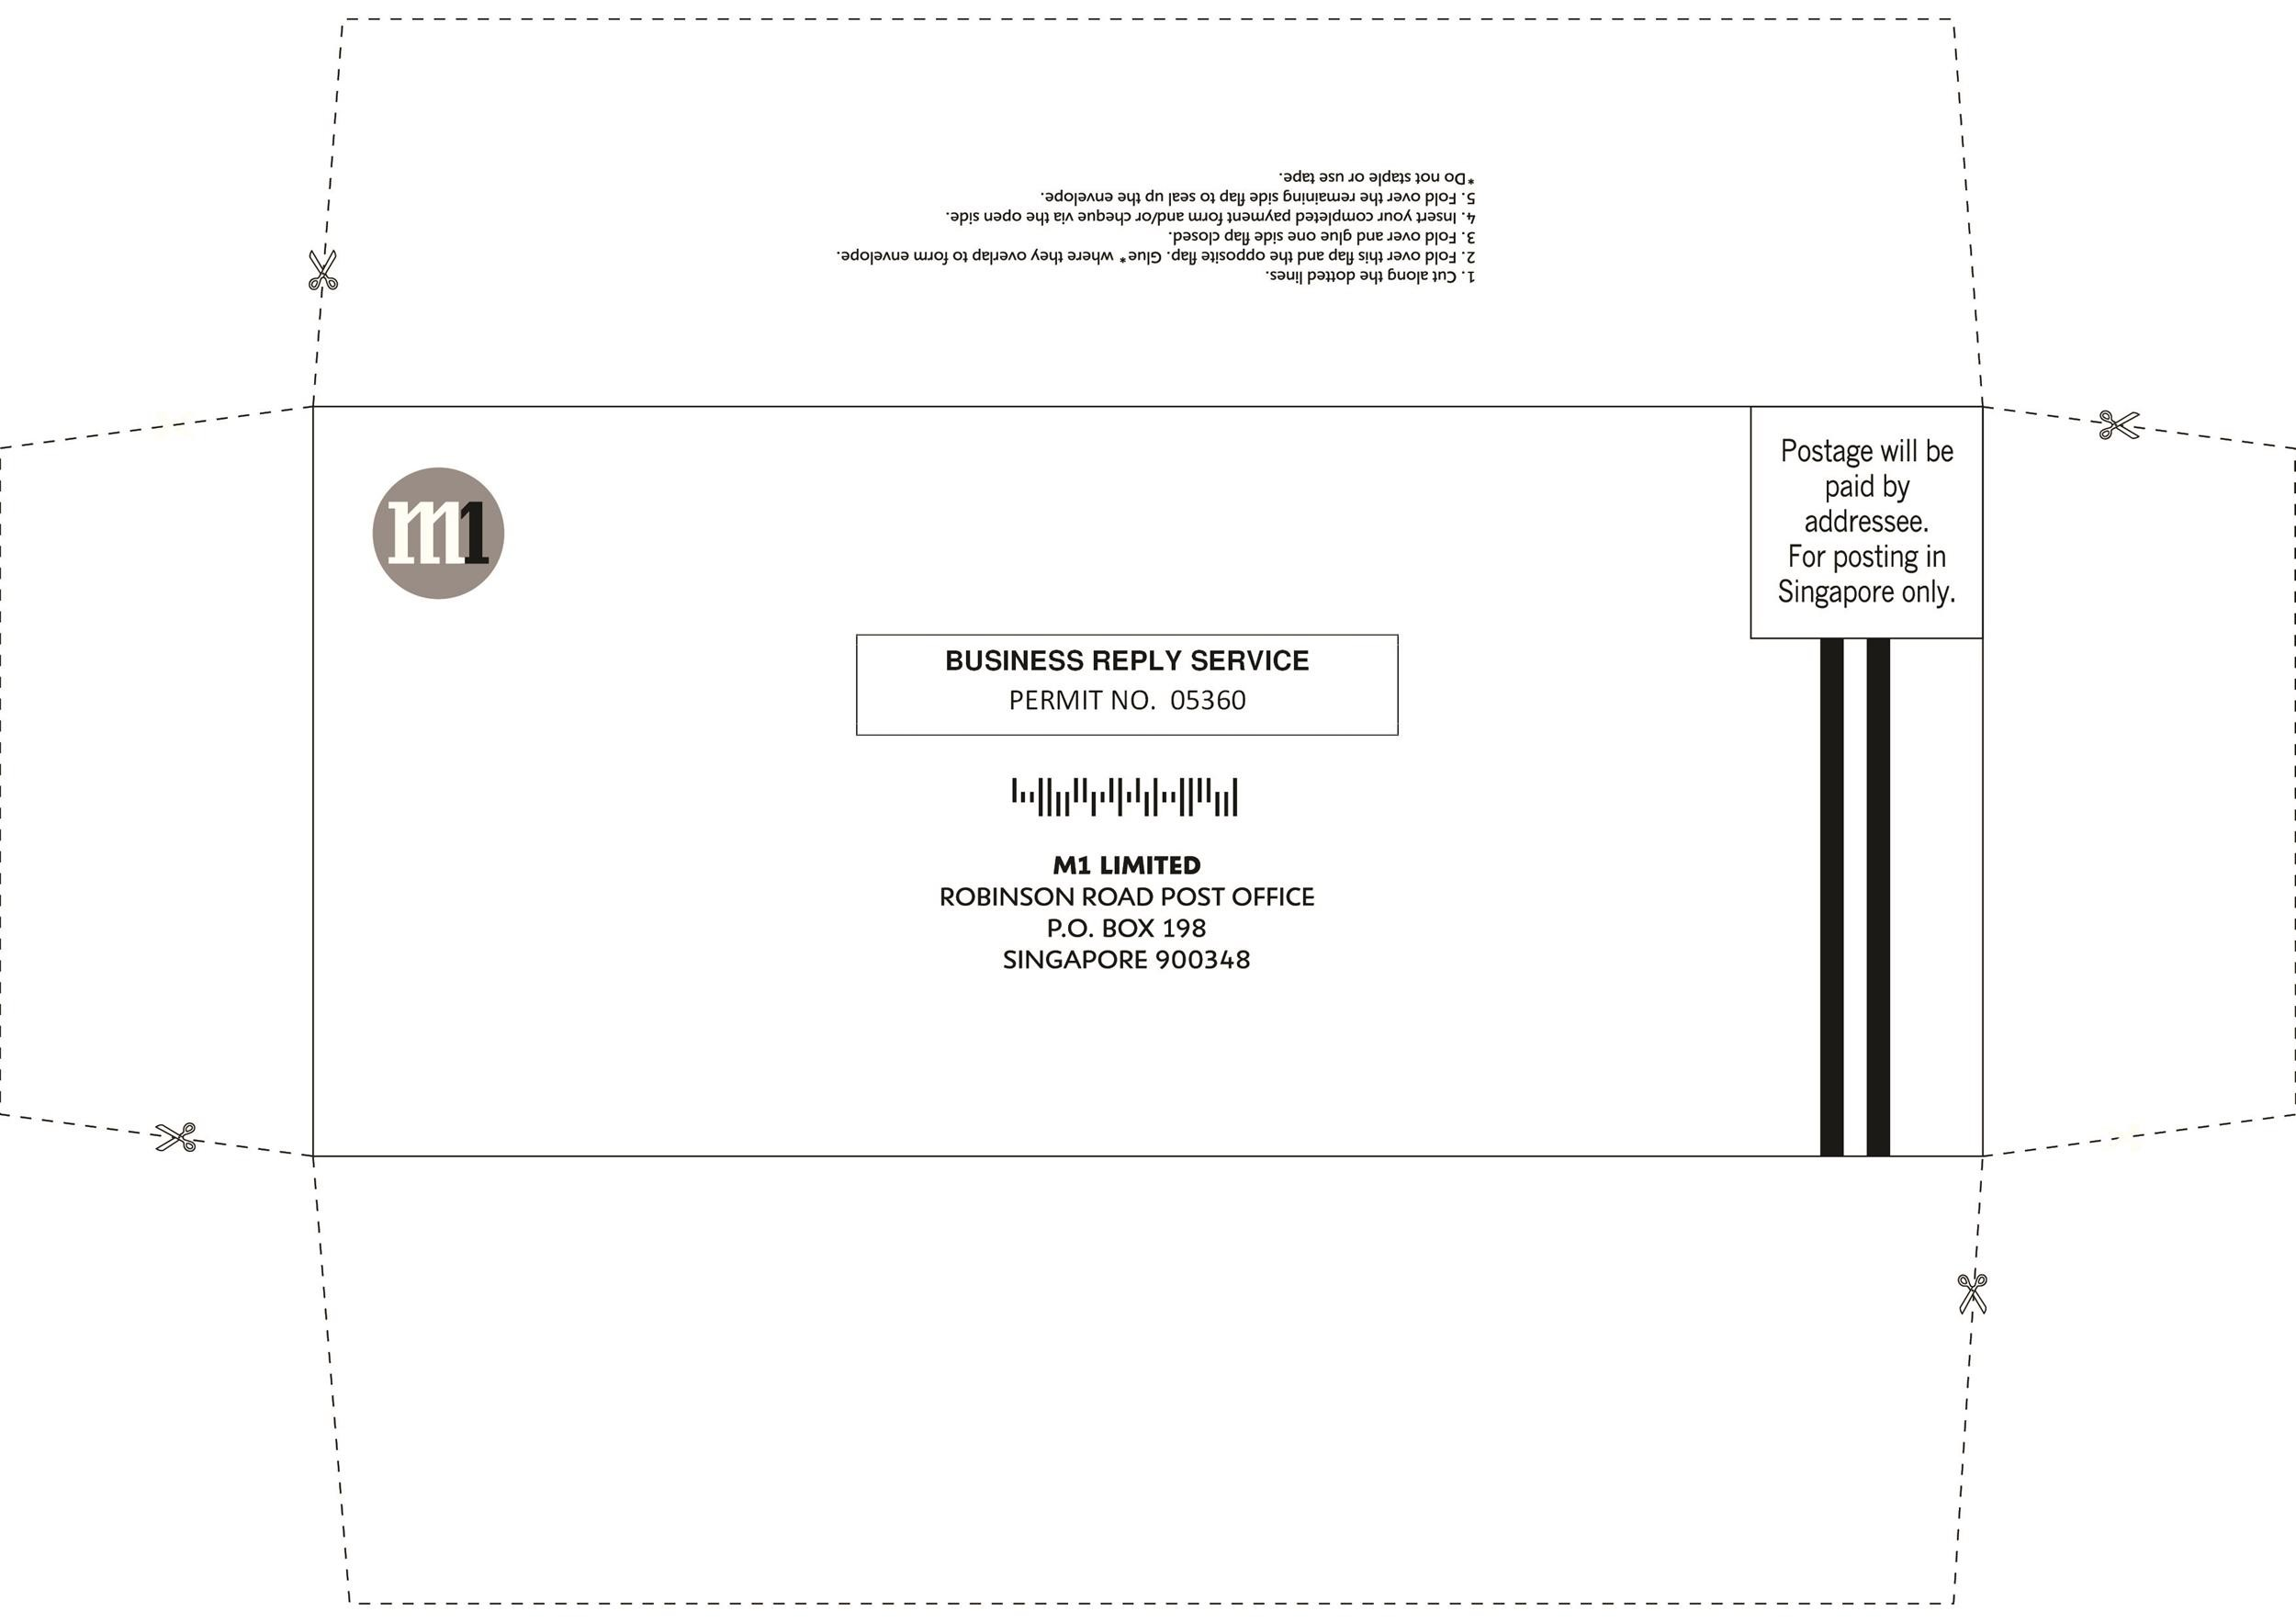 40+ FREE Envelope Templates (Word + PDF) - Template Lab - Sample 5x7 Envelope Template